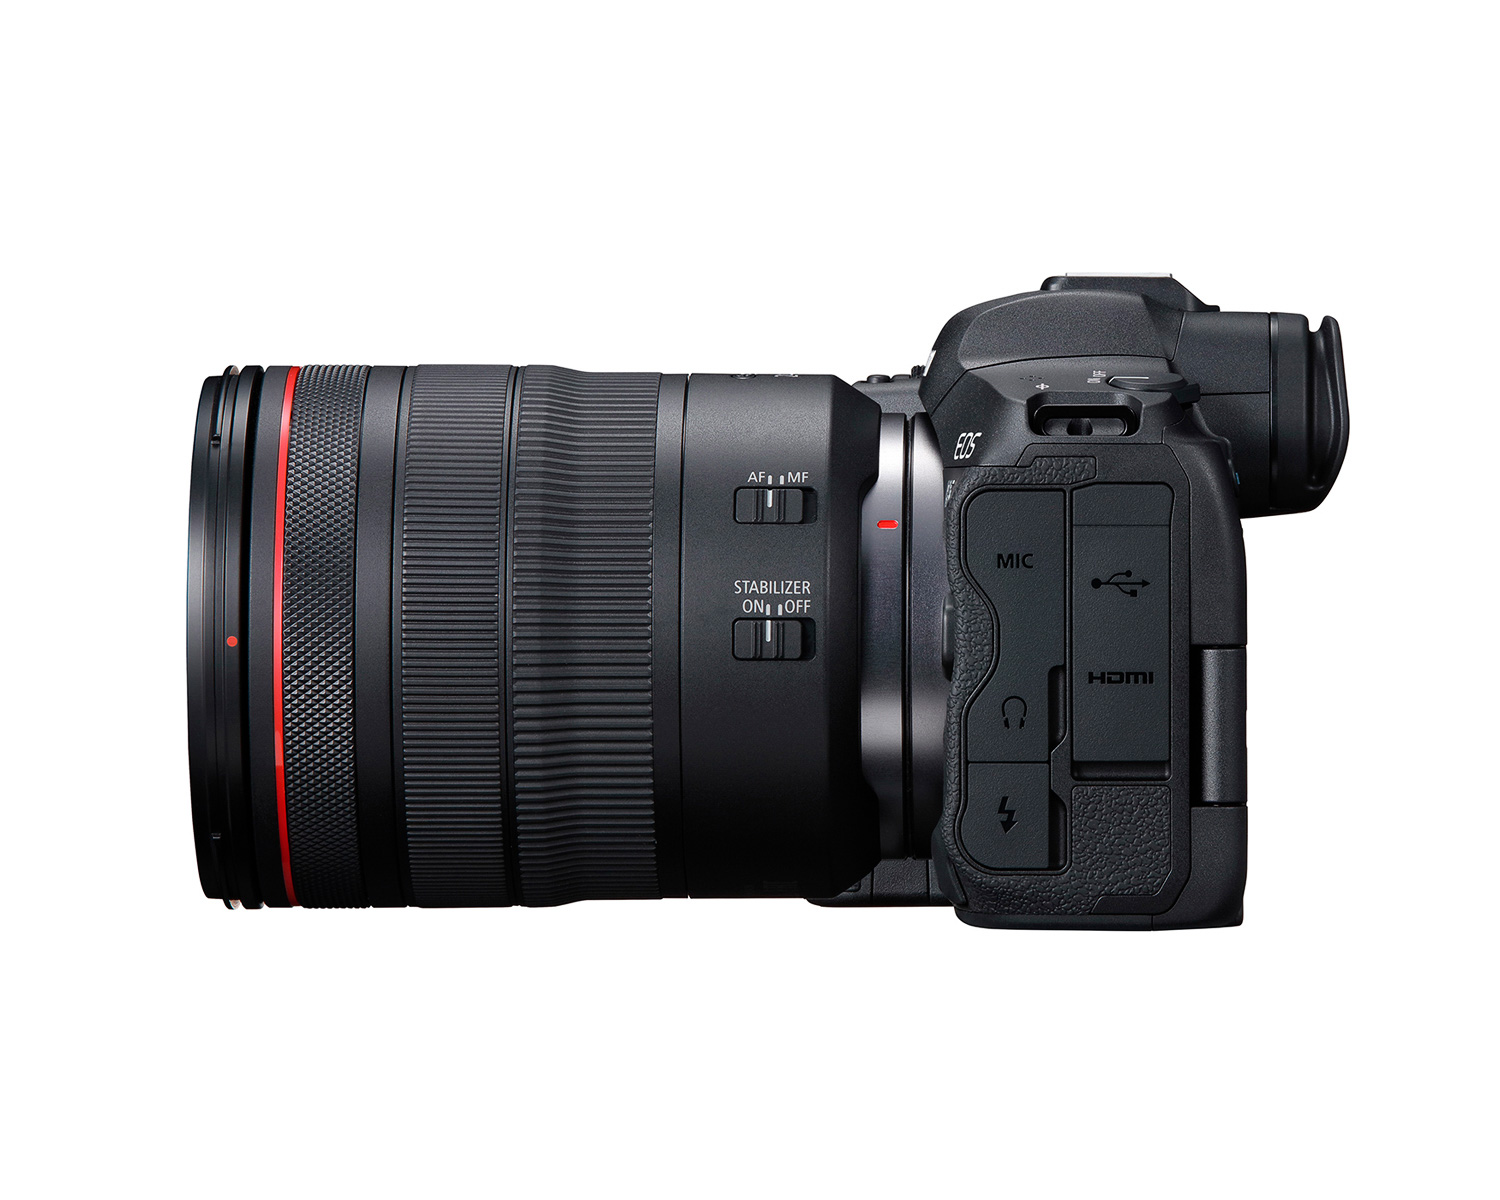 https://i2.wp.com/digital-photography-school.com/wp-content/uploads/2020/07/Canon-R5-R6-announcement-102.jpg?ssl=1